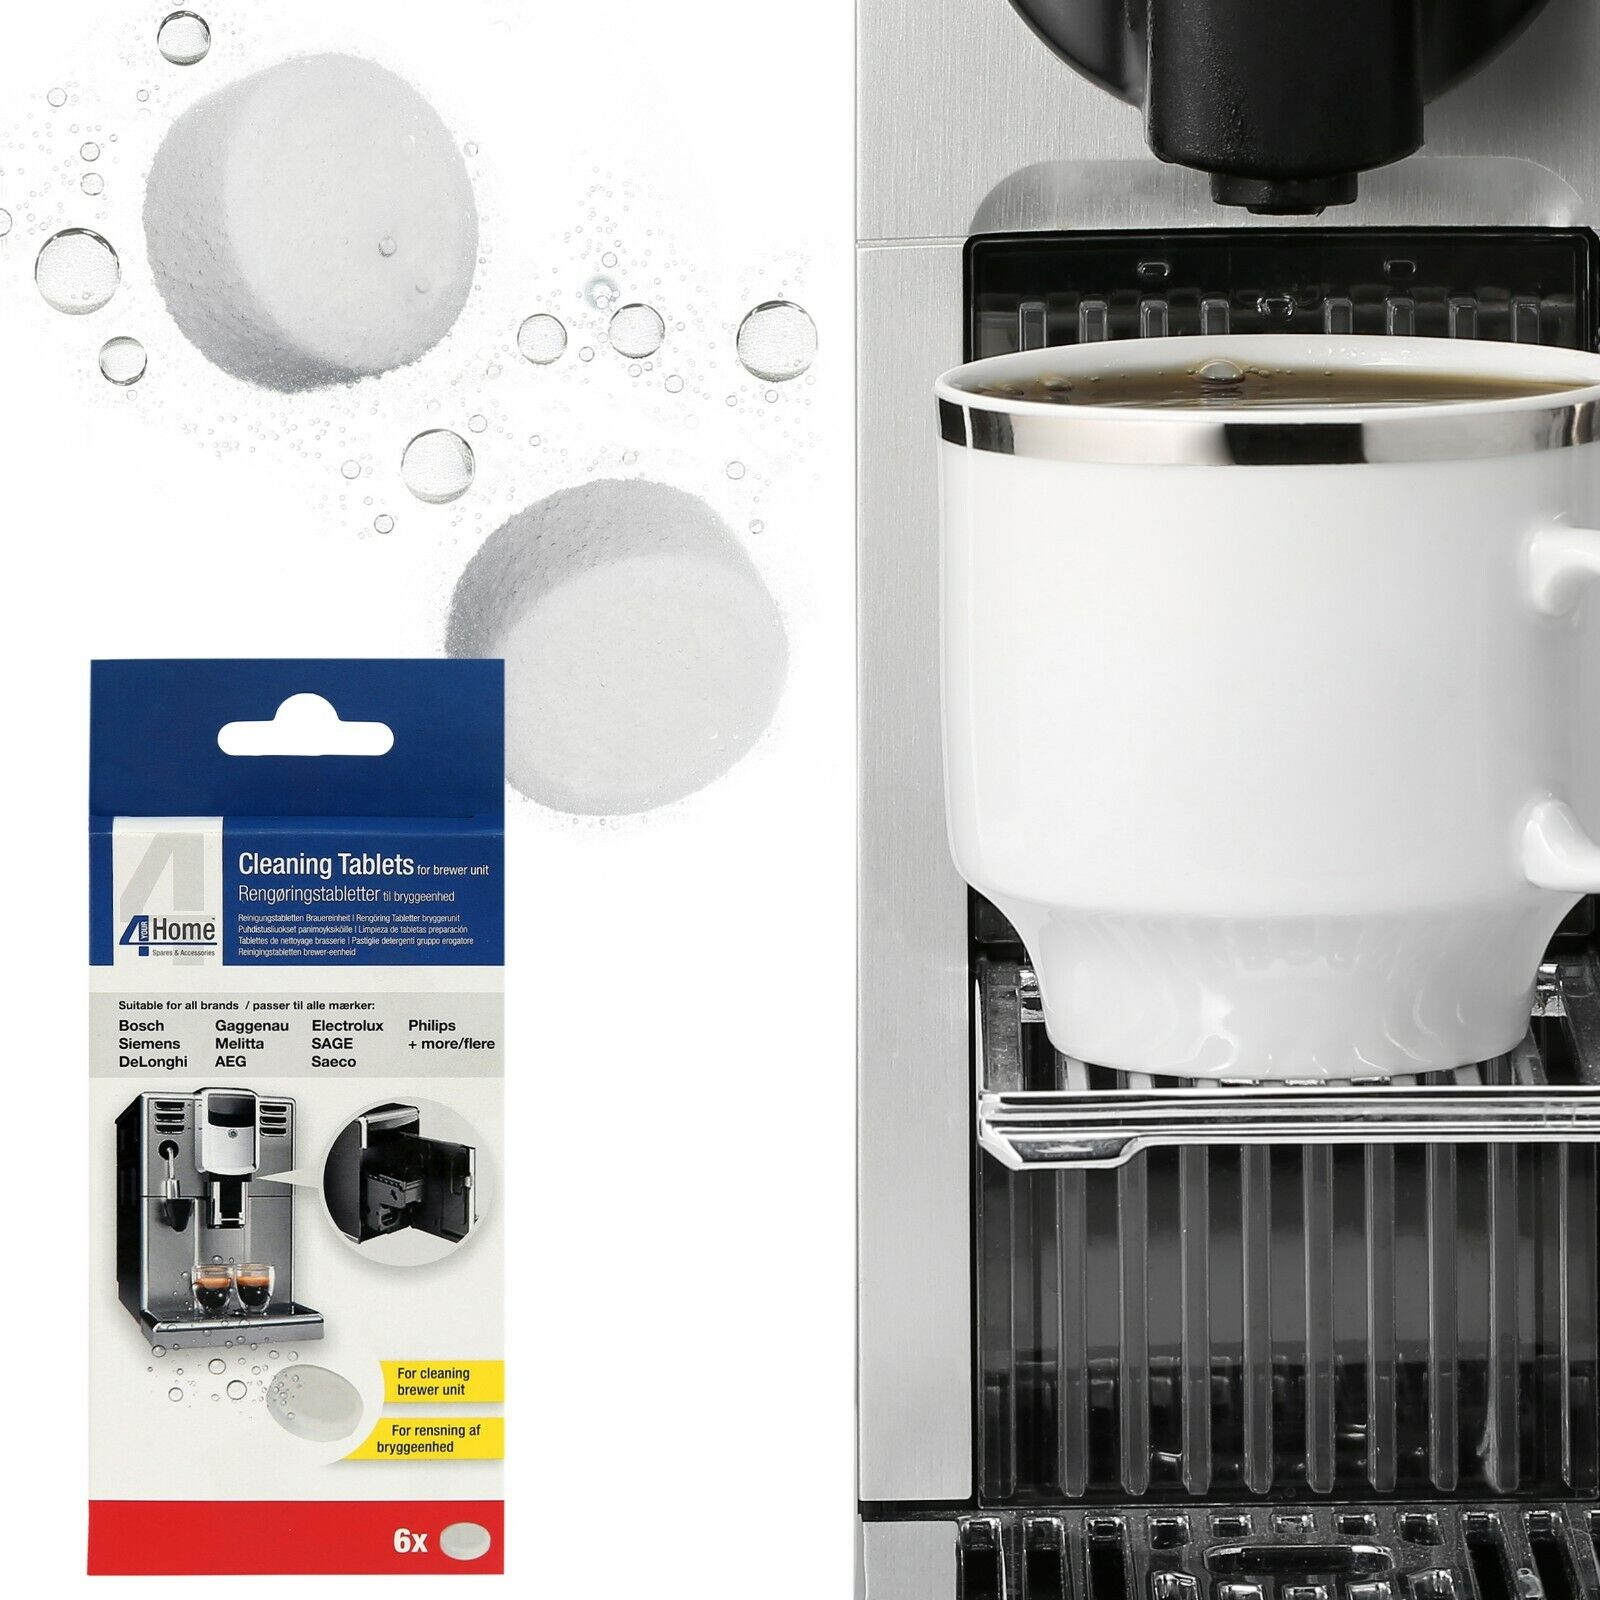 Details About 6 X Cleaning Tablets For Philips Saeco Melitta Coffee Maker Brewer Units